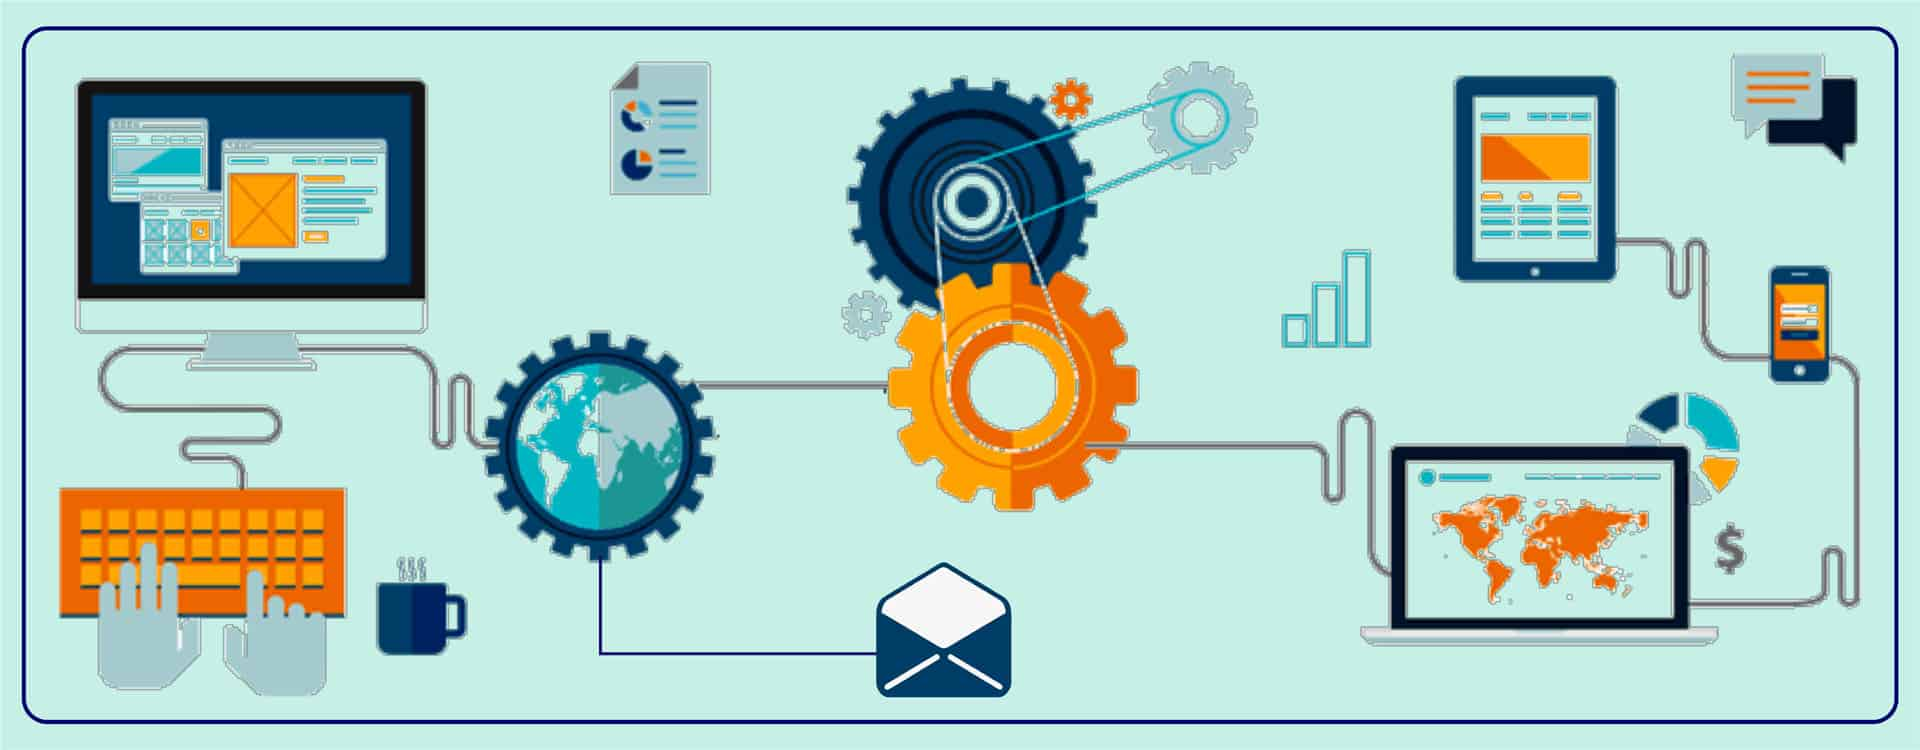 Automate business process and reduce the task redundancies in your business